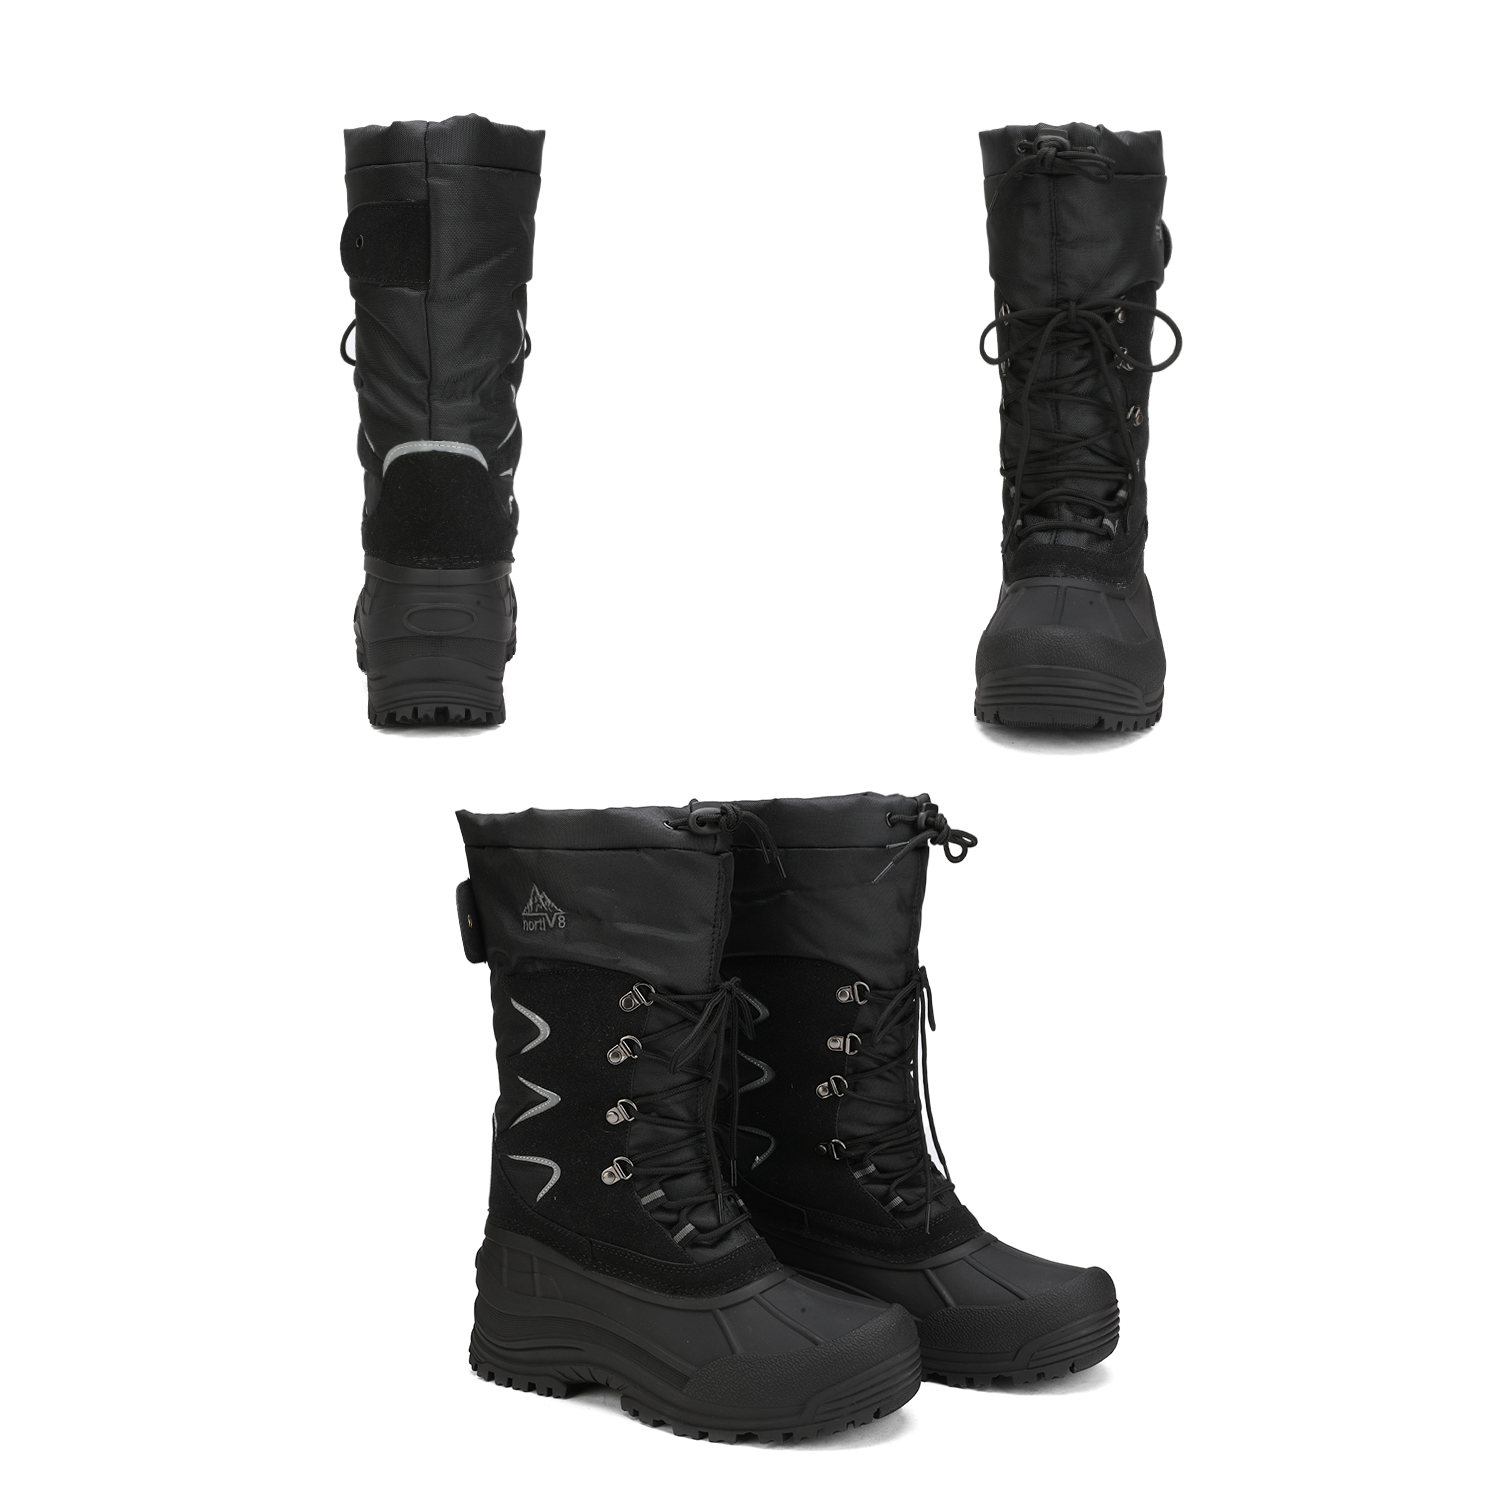 NORTIV-8-Men-039-s-Winter-Snow-Boots-Waterproof-Warm-Thermolite-Outdoor-Hiking-Boots thumbnail 16